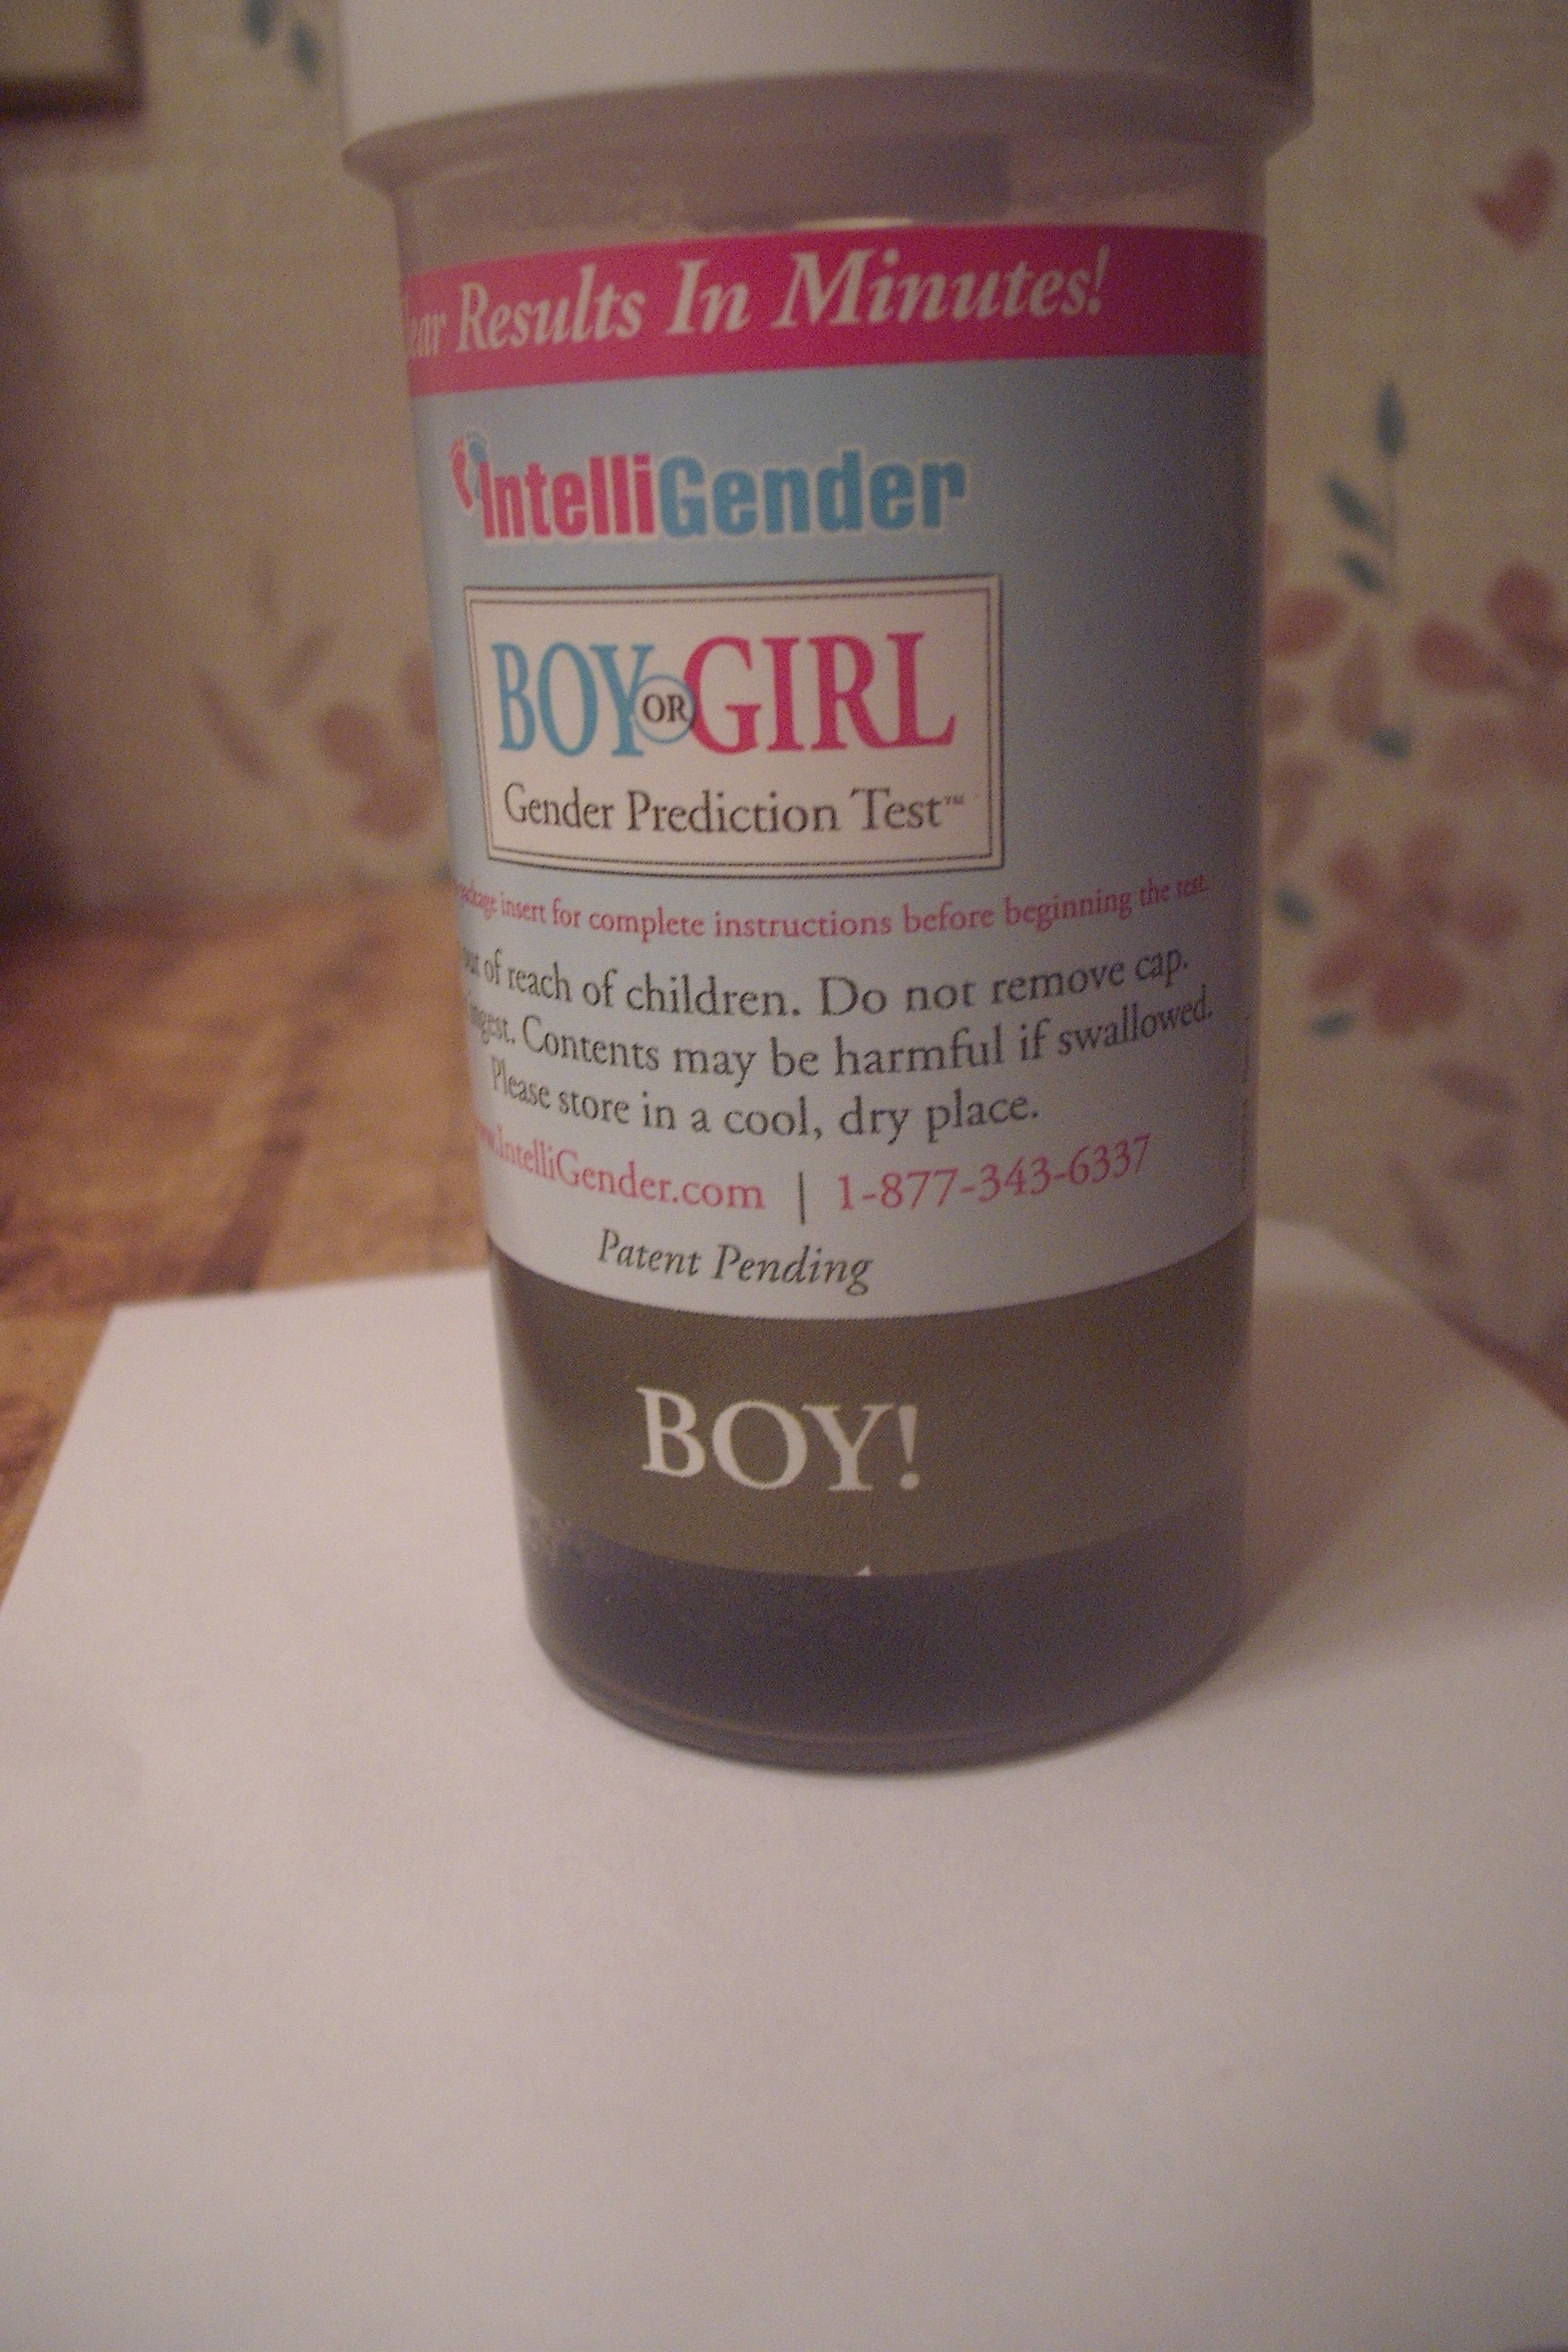 9e4781a57e So according to IntelliGender I am having a boy! It was fun to do this….not  knowing that it would say. Now